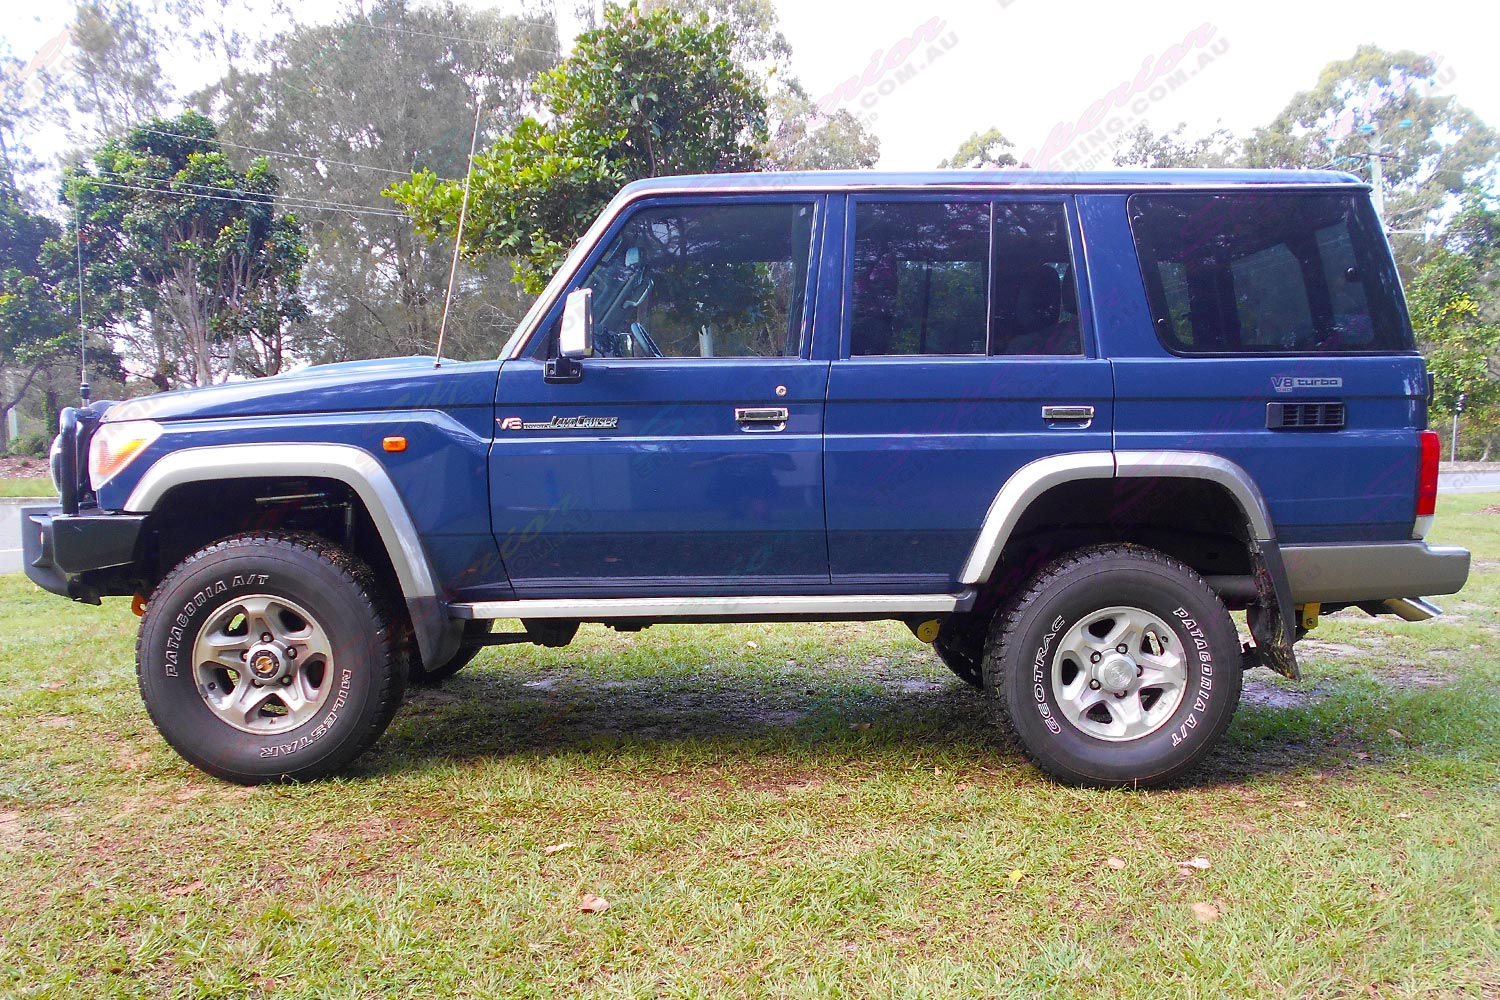 Toyota Landcruiser 76 Series Wagon Blue 51199 Superior Customer Land Cruiser Lift Kit Left Side View Of A Fitted With Remote